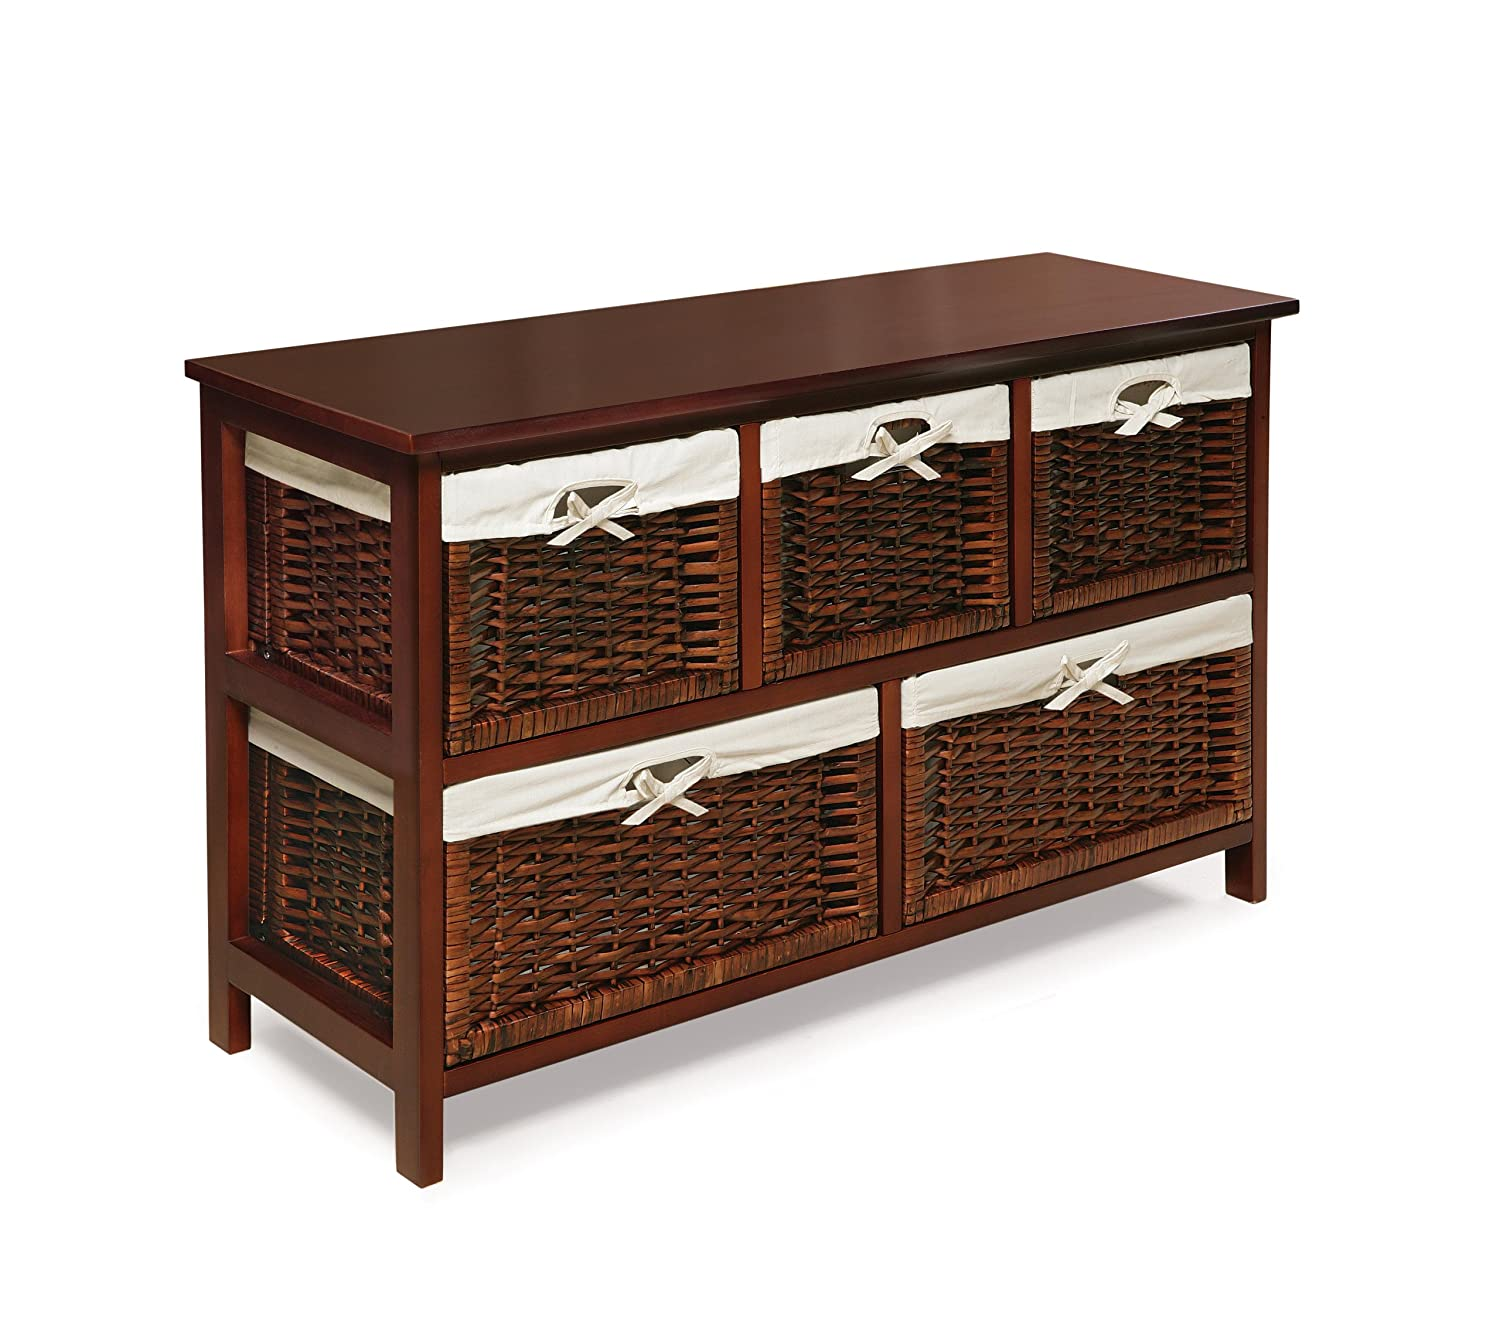 Beau Amazon.com: Badger Basket Five Basket Storage Unit With Wicker Baskets,  Espresso: Baby